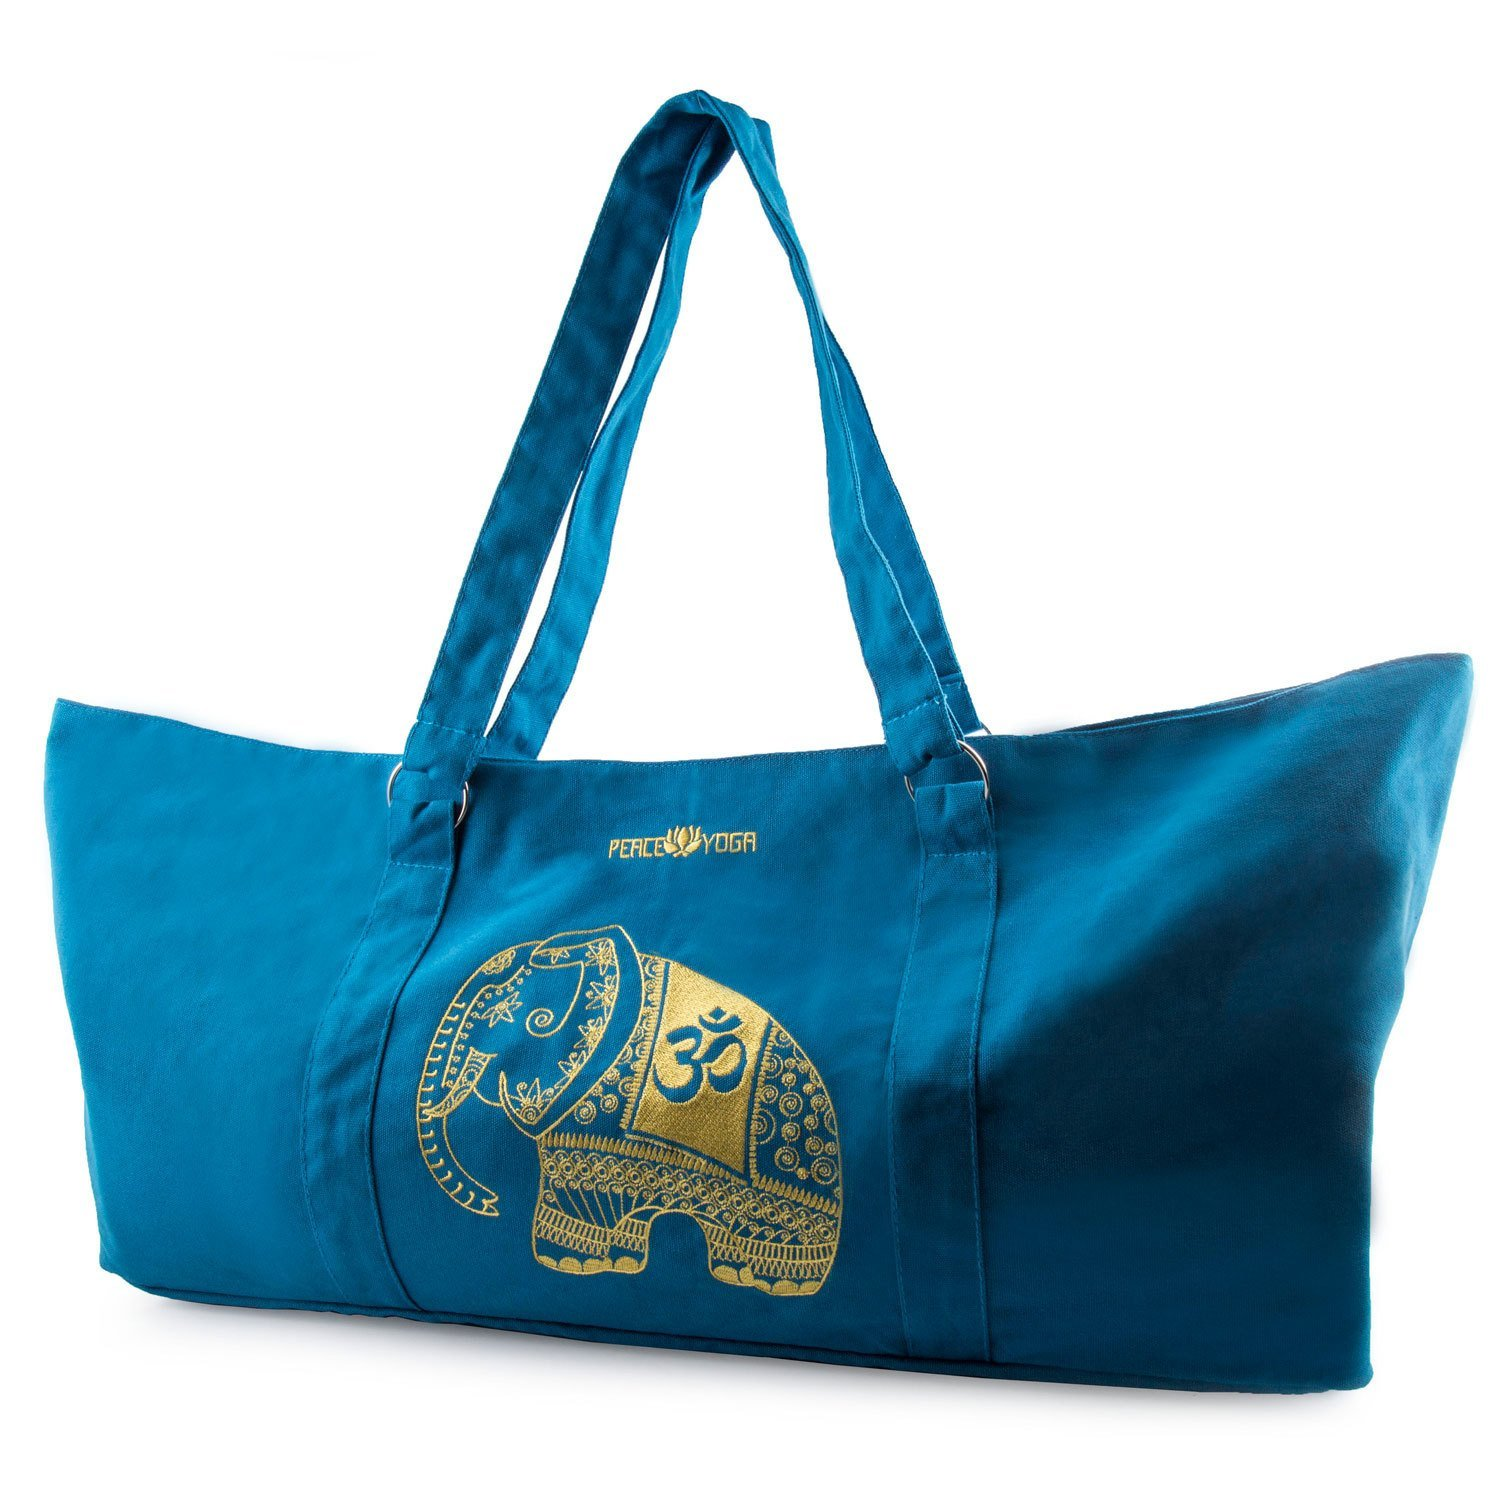 peace yoga adjustable yoga mat tote bag elephant-blue 451f4d668e299